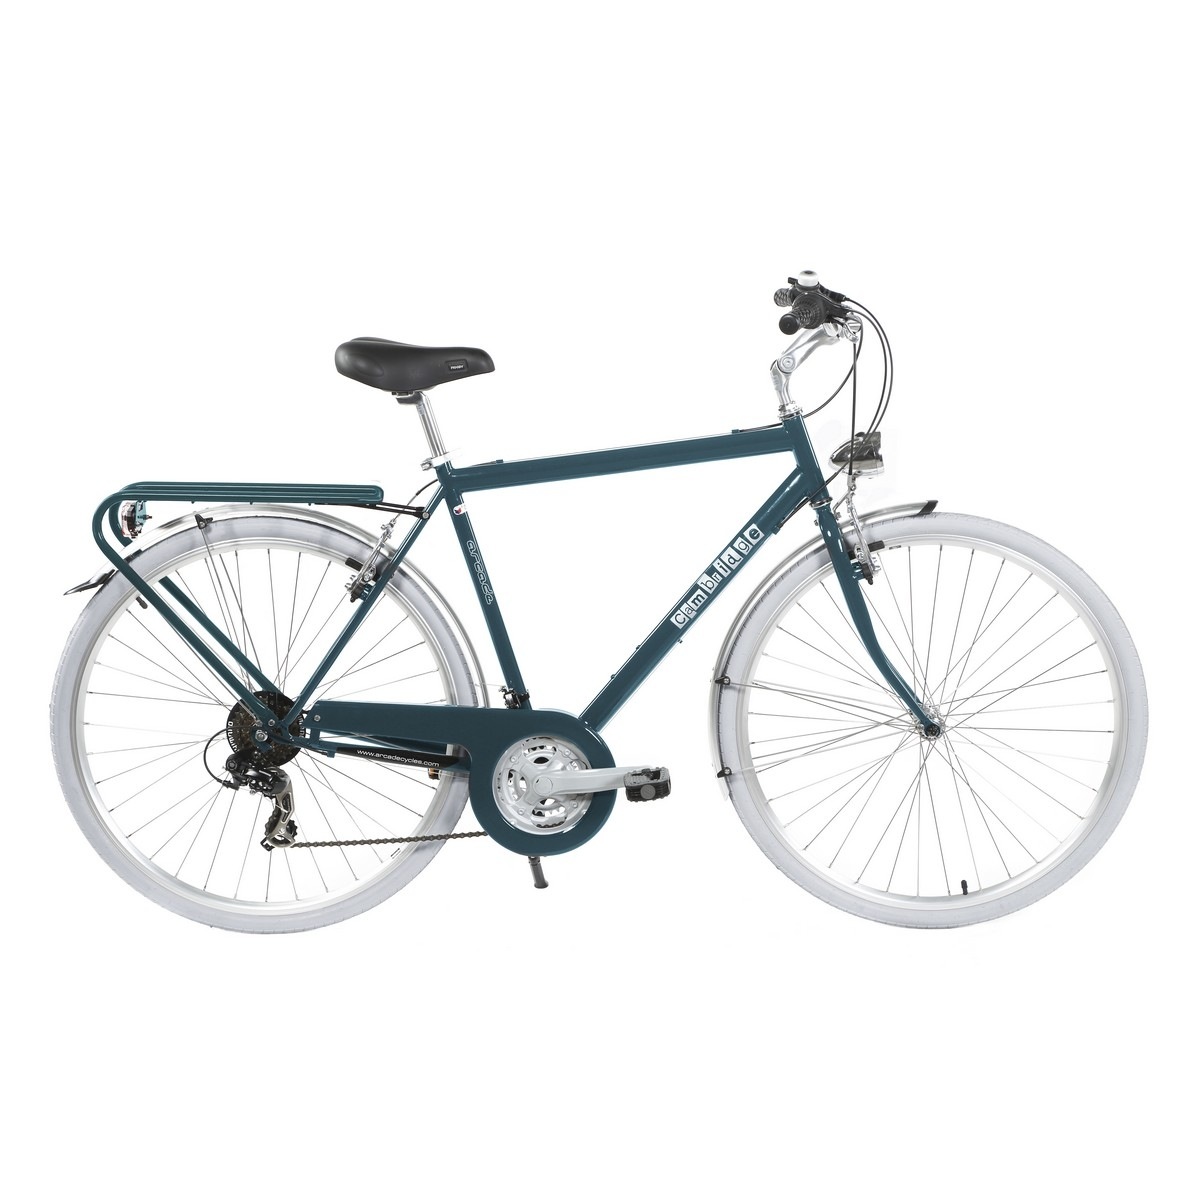 Location vélos Arles,bike rental Arles, vtc cambridge arcade homme austral www 1veloc fr